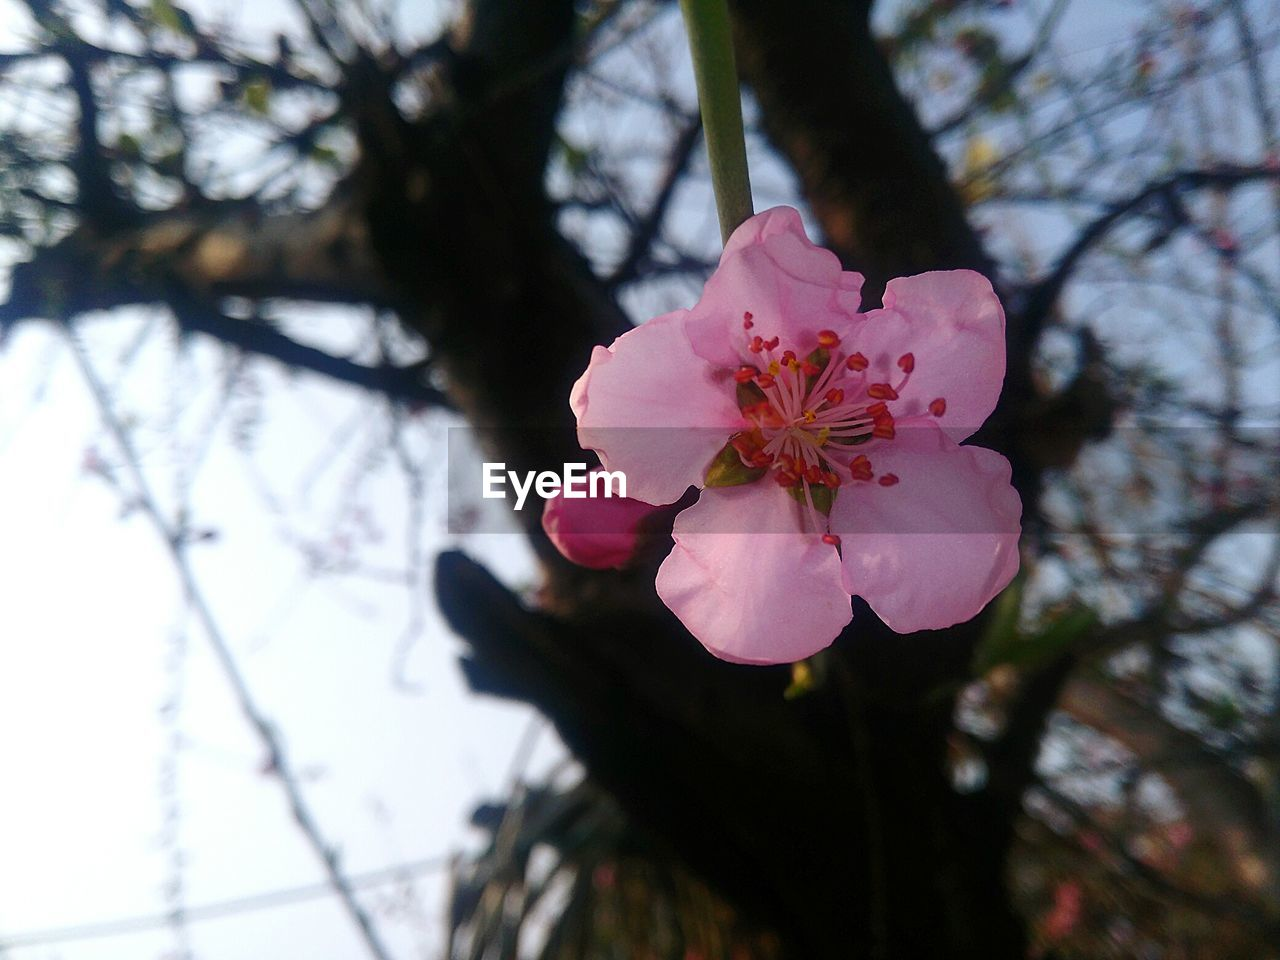 flower, fragility, beauty in nature, petal, growth, nature, pink color, flower head, blossom, freshness, branch, tree, springtime, botany, no people, focus on foreground, day, close-up, twig, stamen, pollen, plum blossom, outdoors, blooming